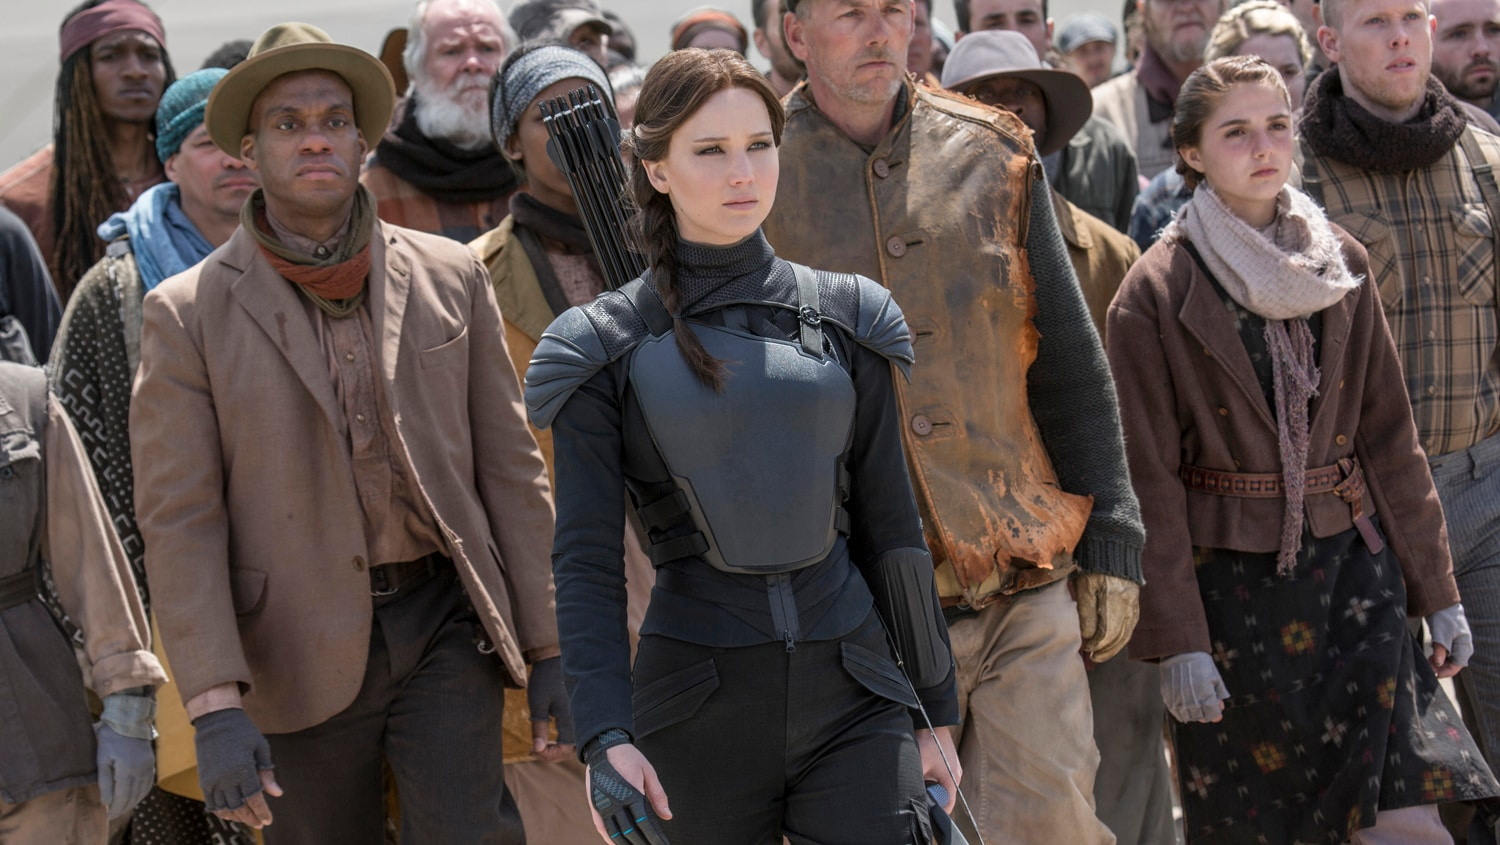 The Hunger Games Mockingjay Part 2 How Is The Film